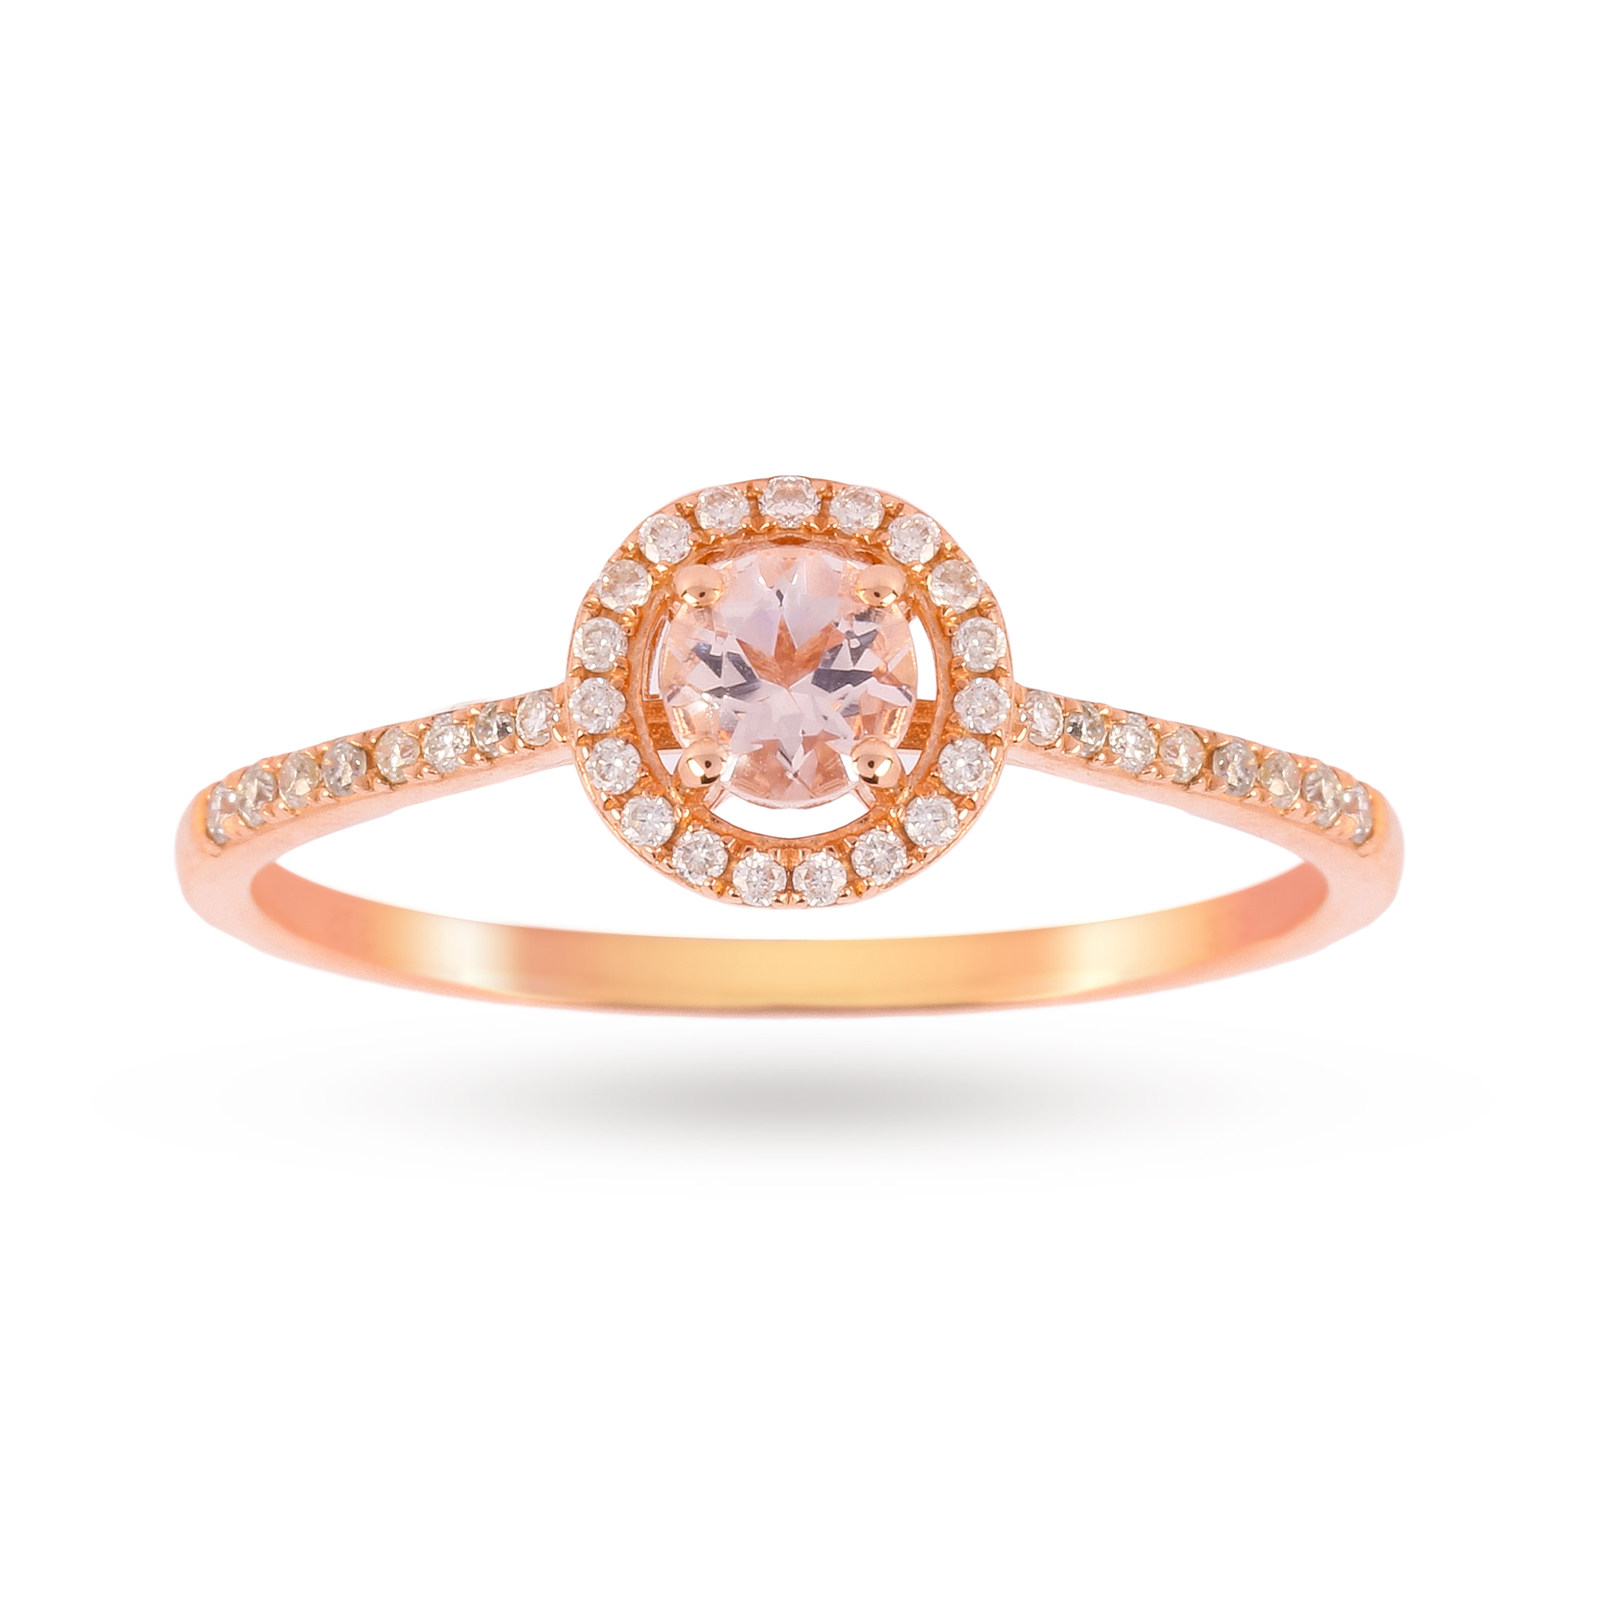 fine material recipient ladies diamond number product webstore enchanted gold disney jewelry samuel belle l h jewellery rings category ring rose